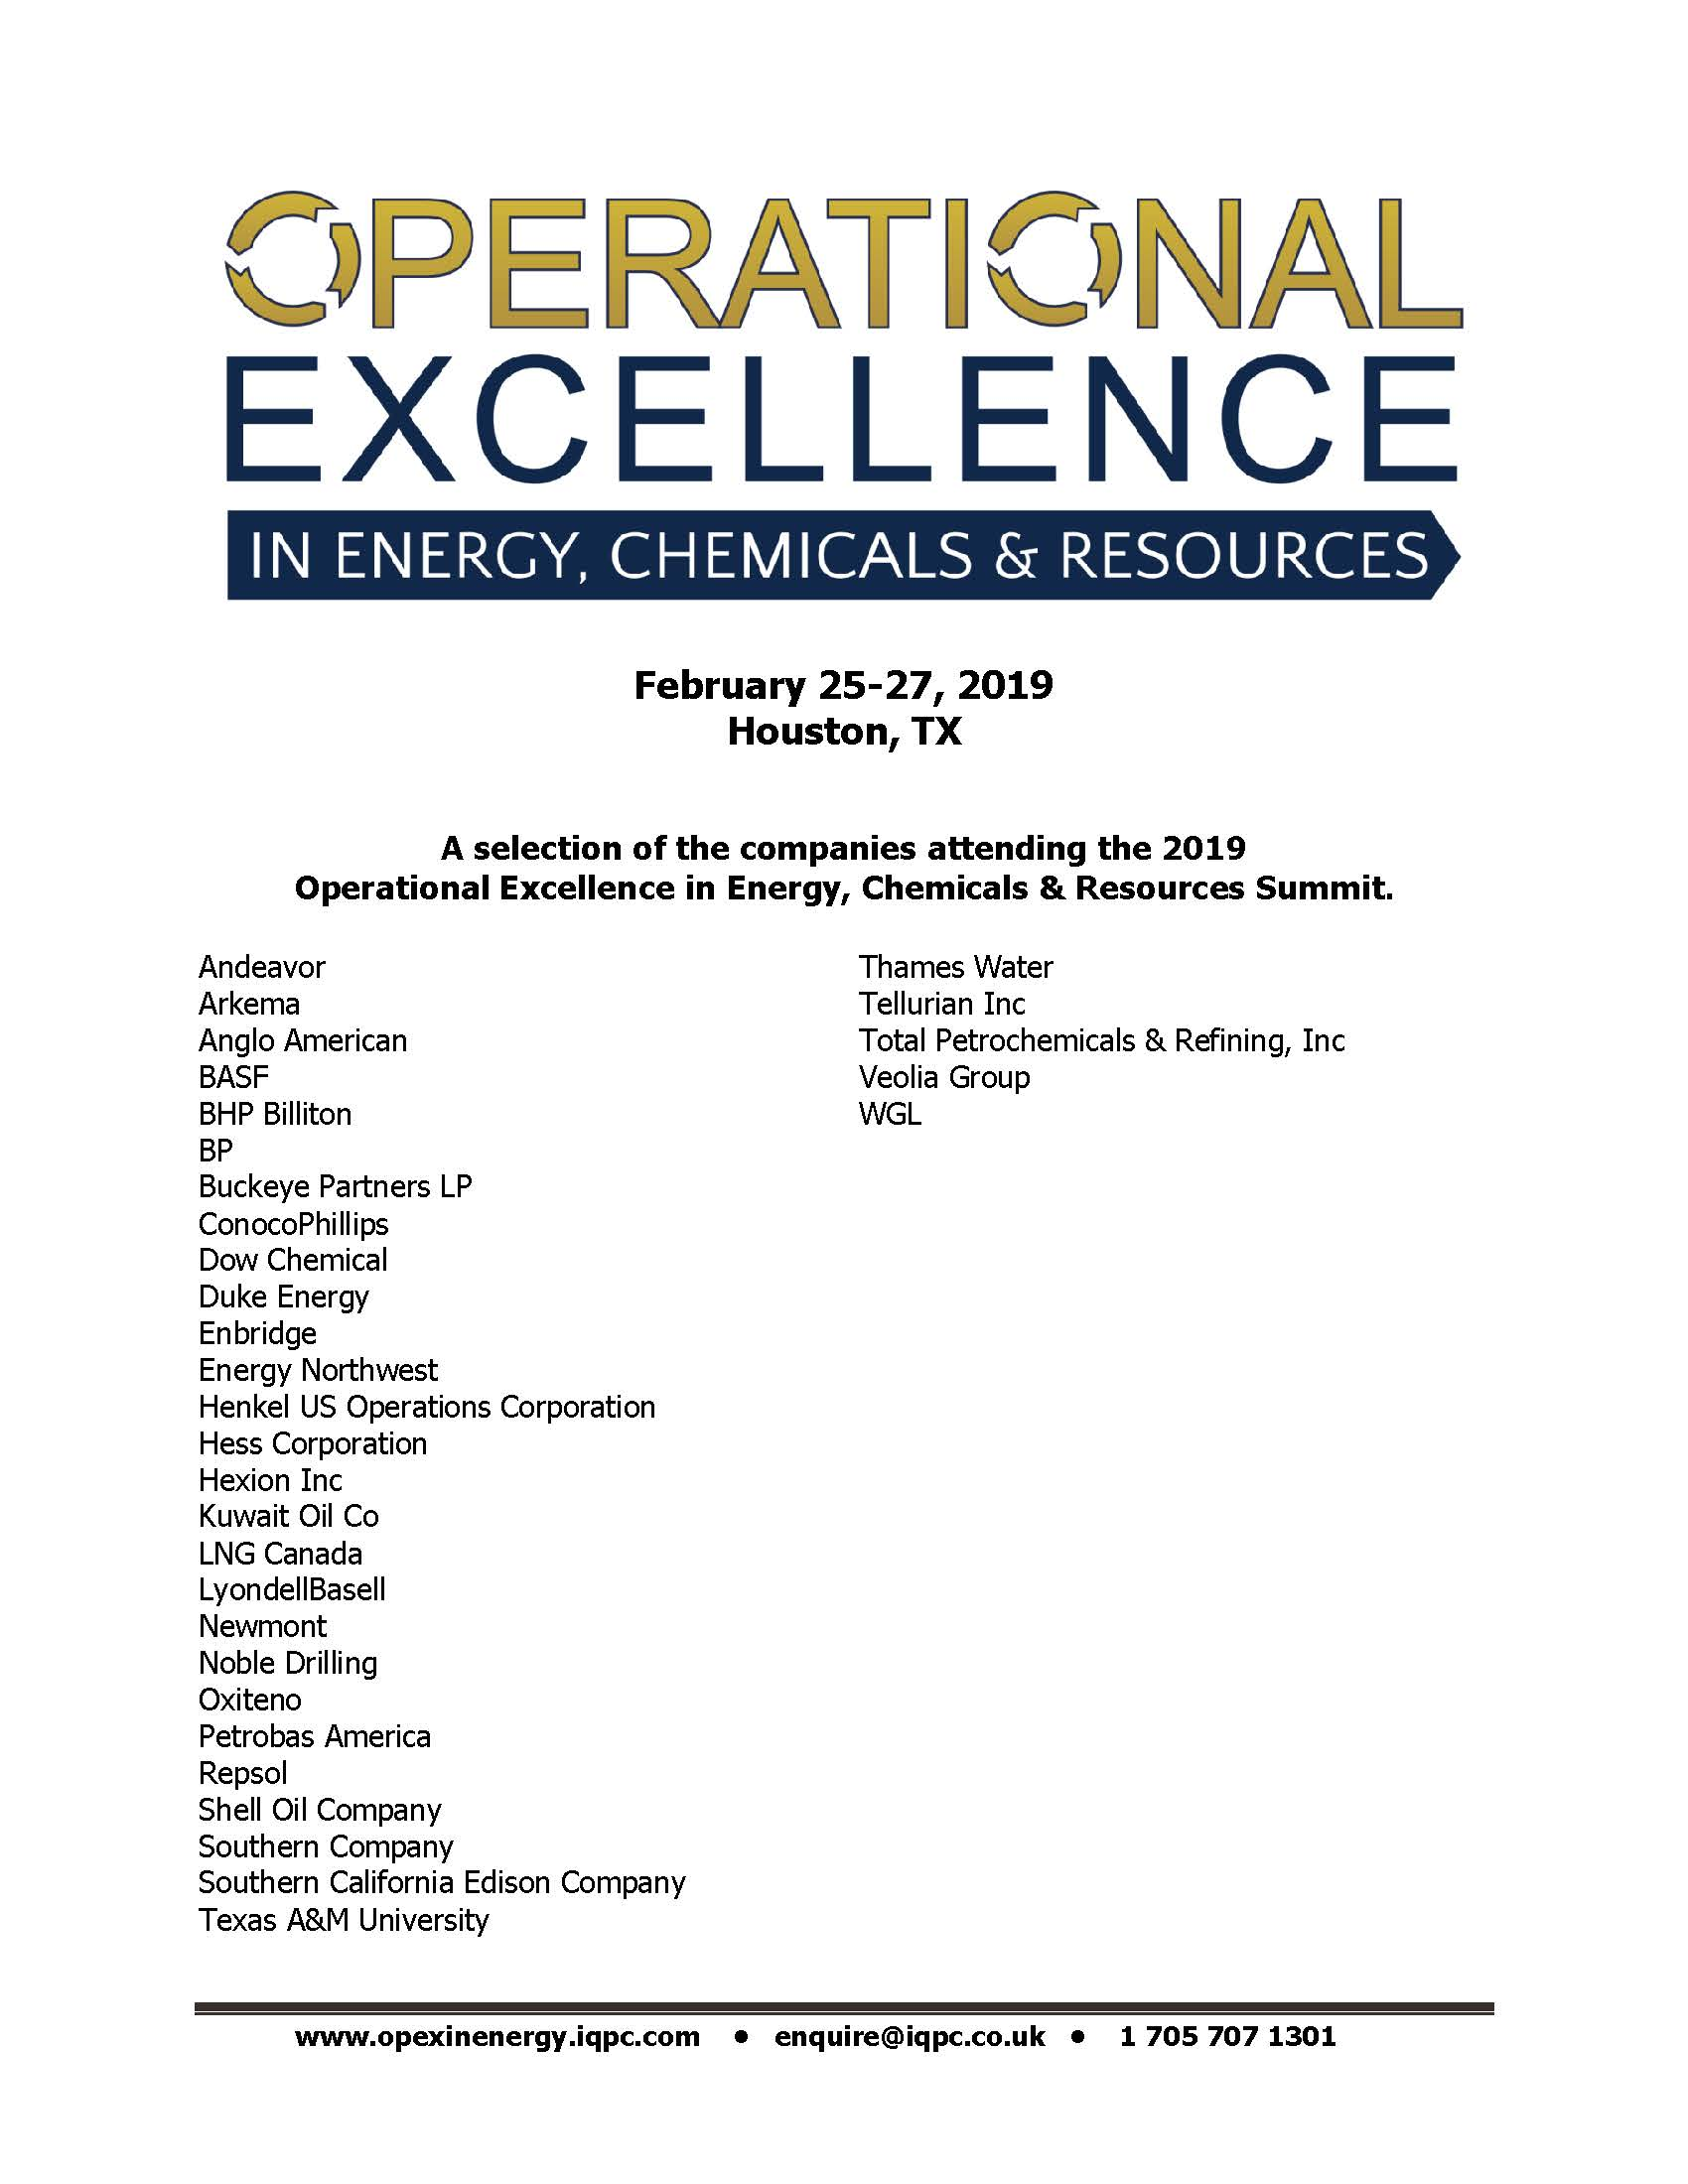 OpEx in Energy, Chemicals & Resources Summit - Sample Attendee List